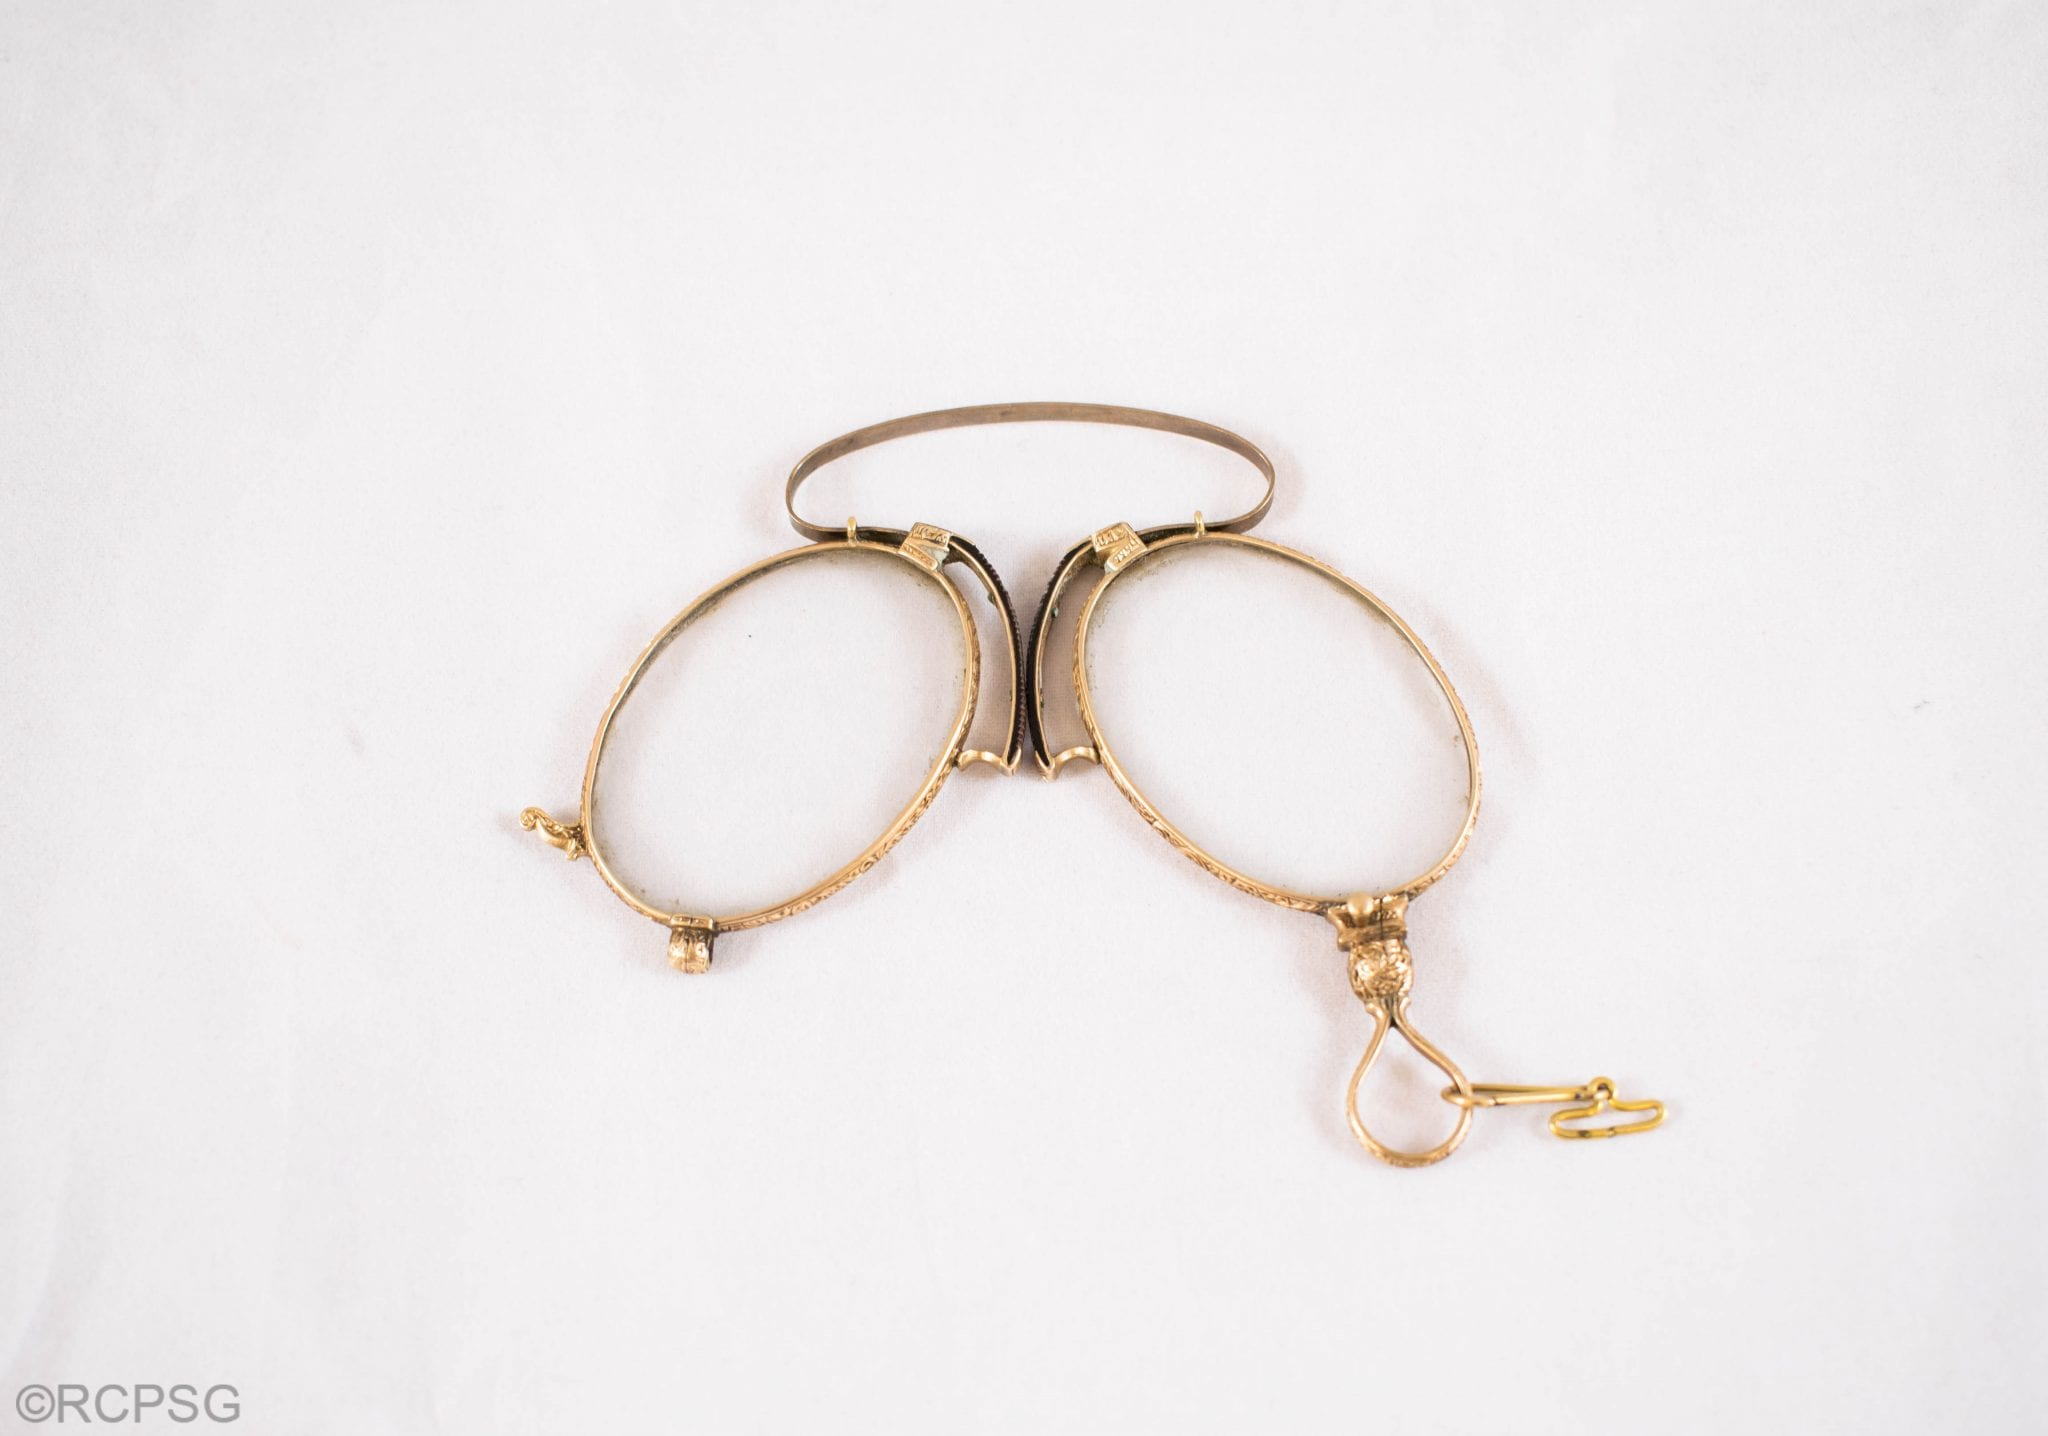 Folding pince-nez style spectacles